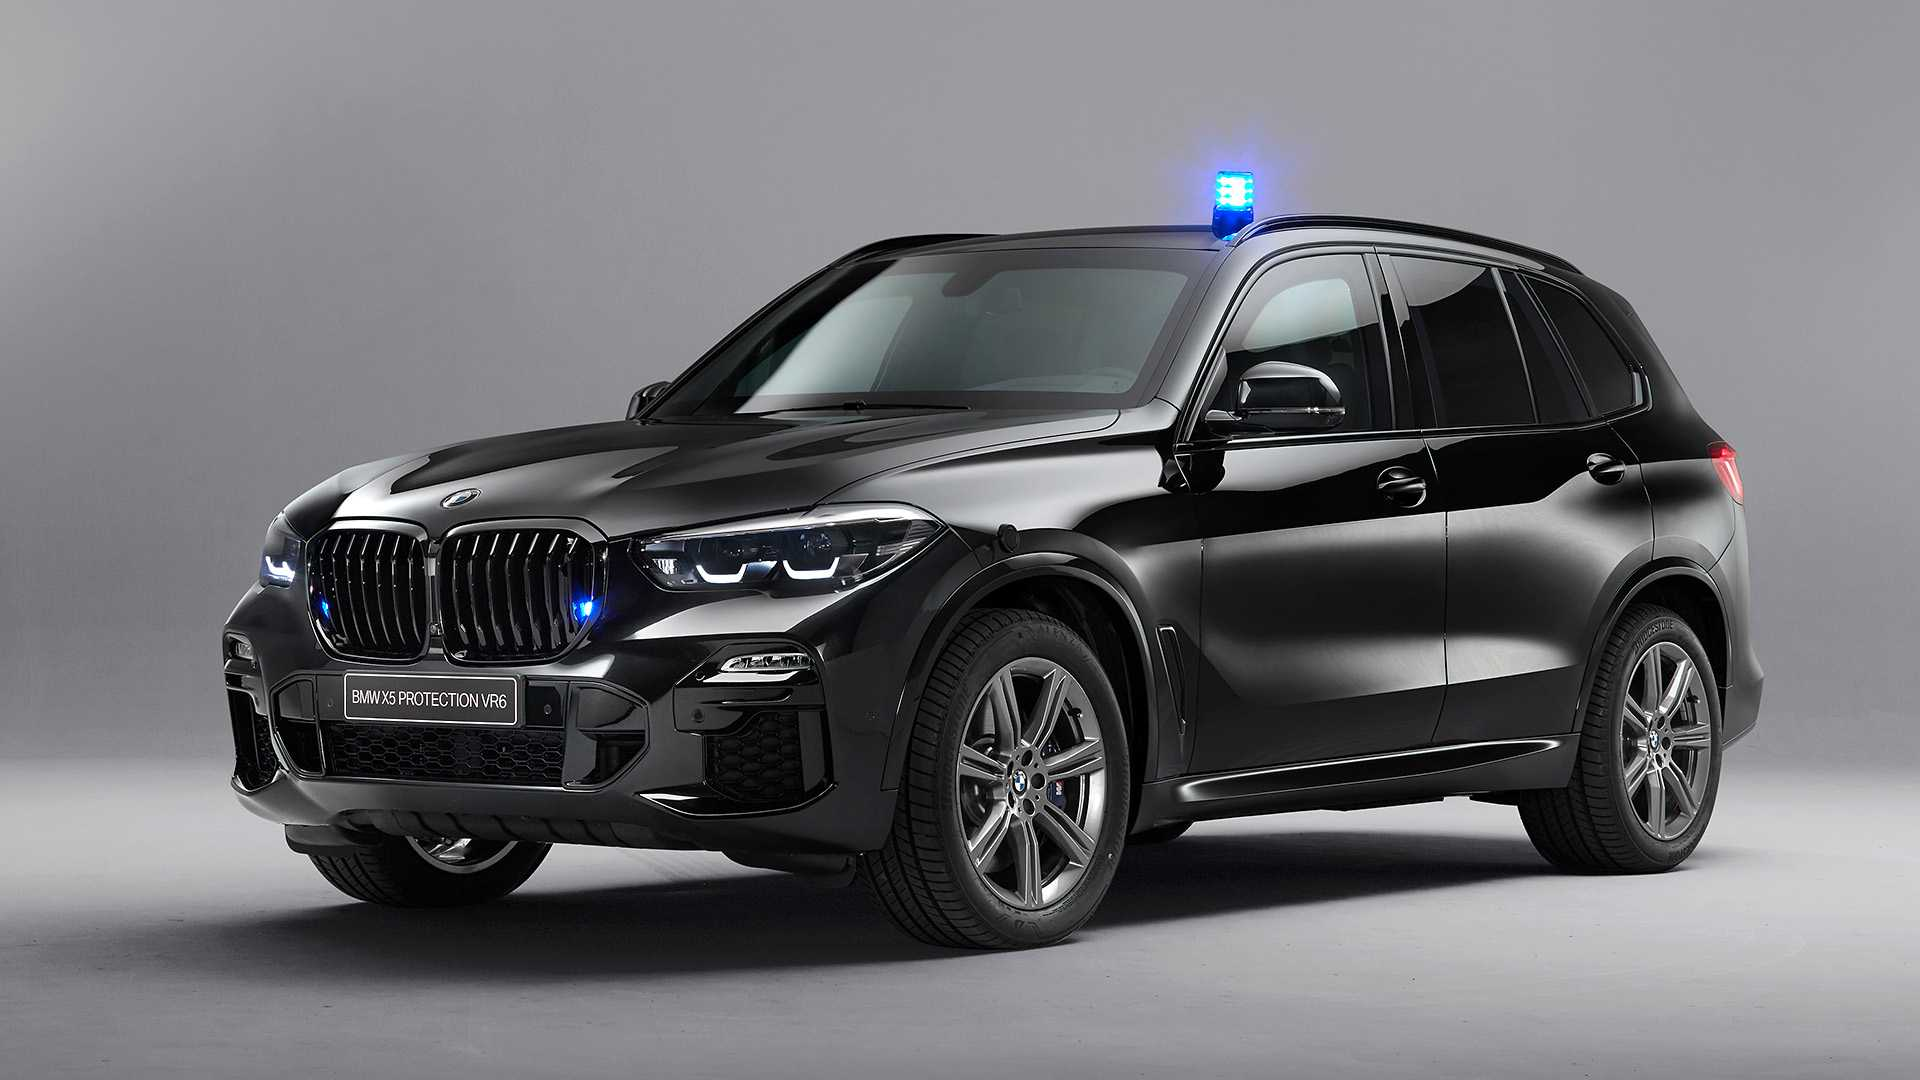 2020 BMW X5 Protection VR6 (Armored Vehicle) Front Three-Quarter Wallpapers (6)